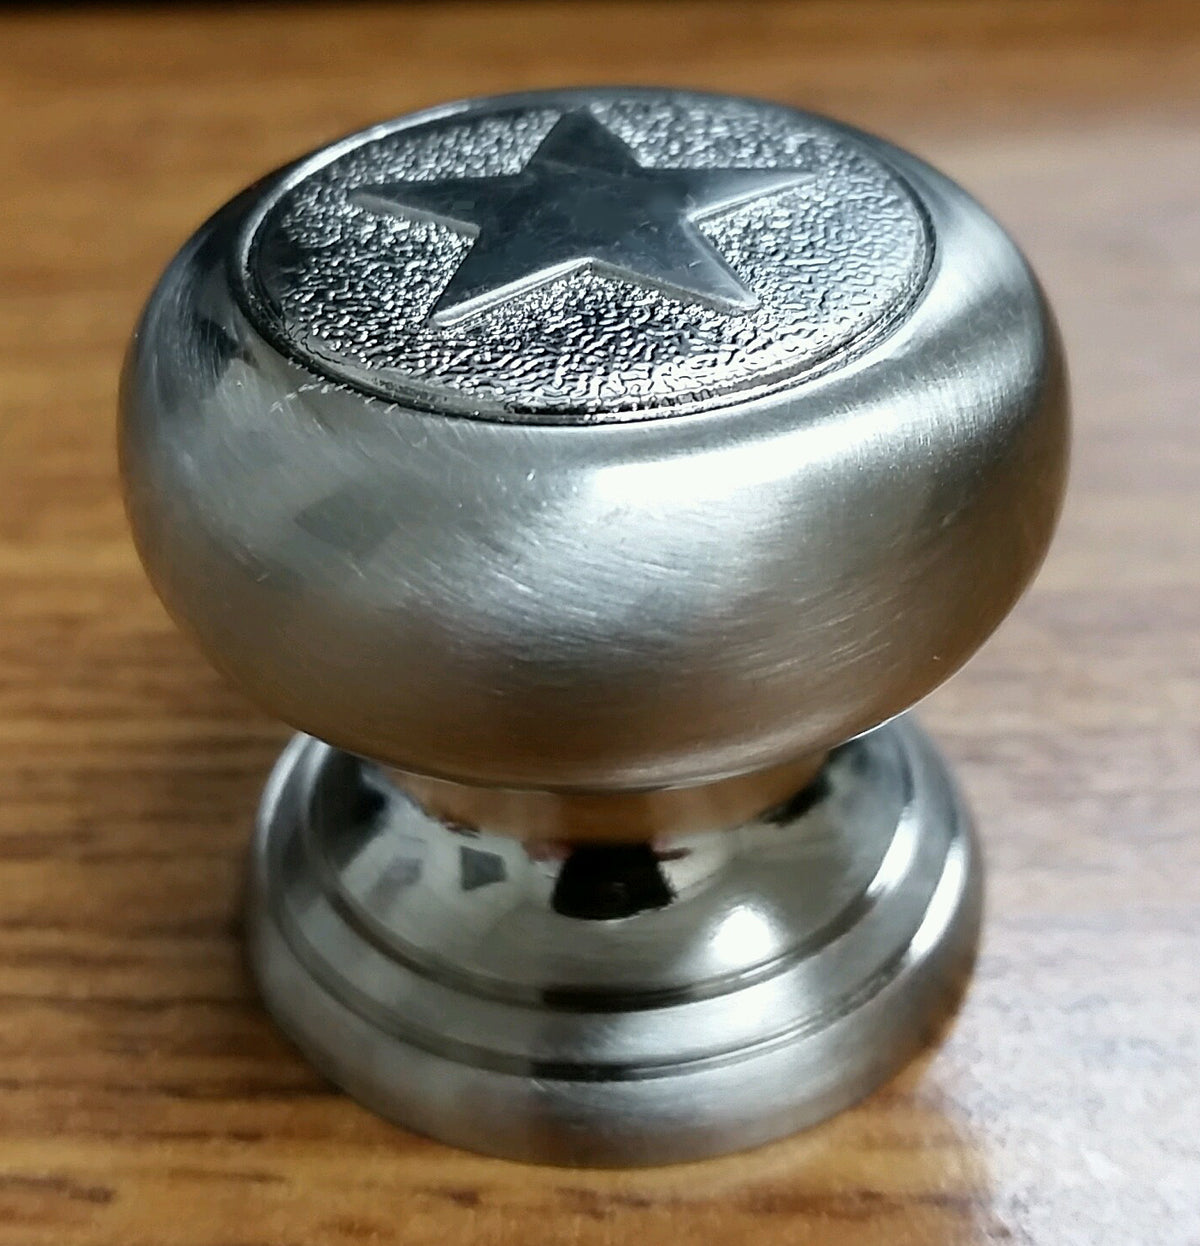 (Set of 5) Western Style Star Knobs, Satin Nickel Finish - Wild West Hardware